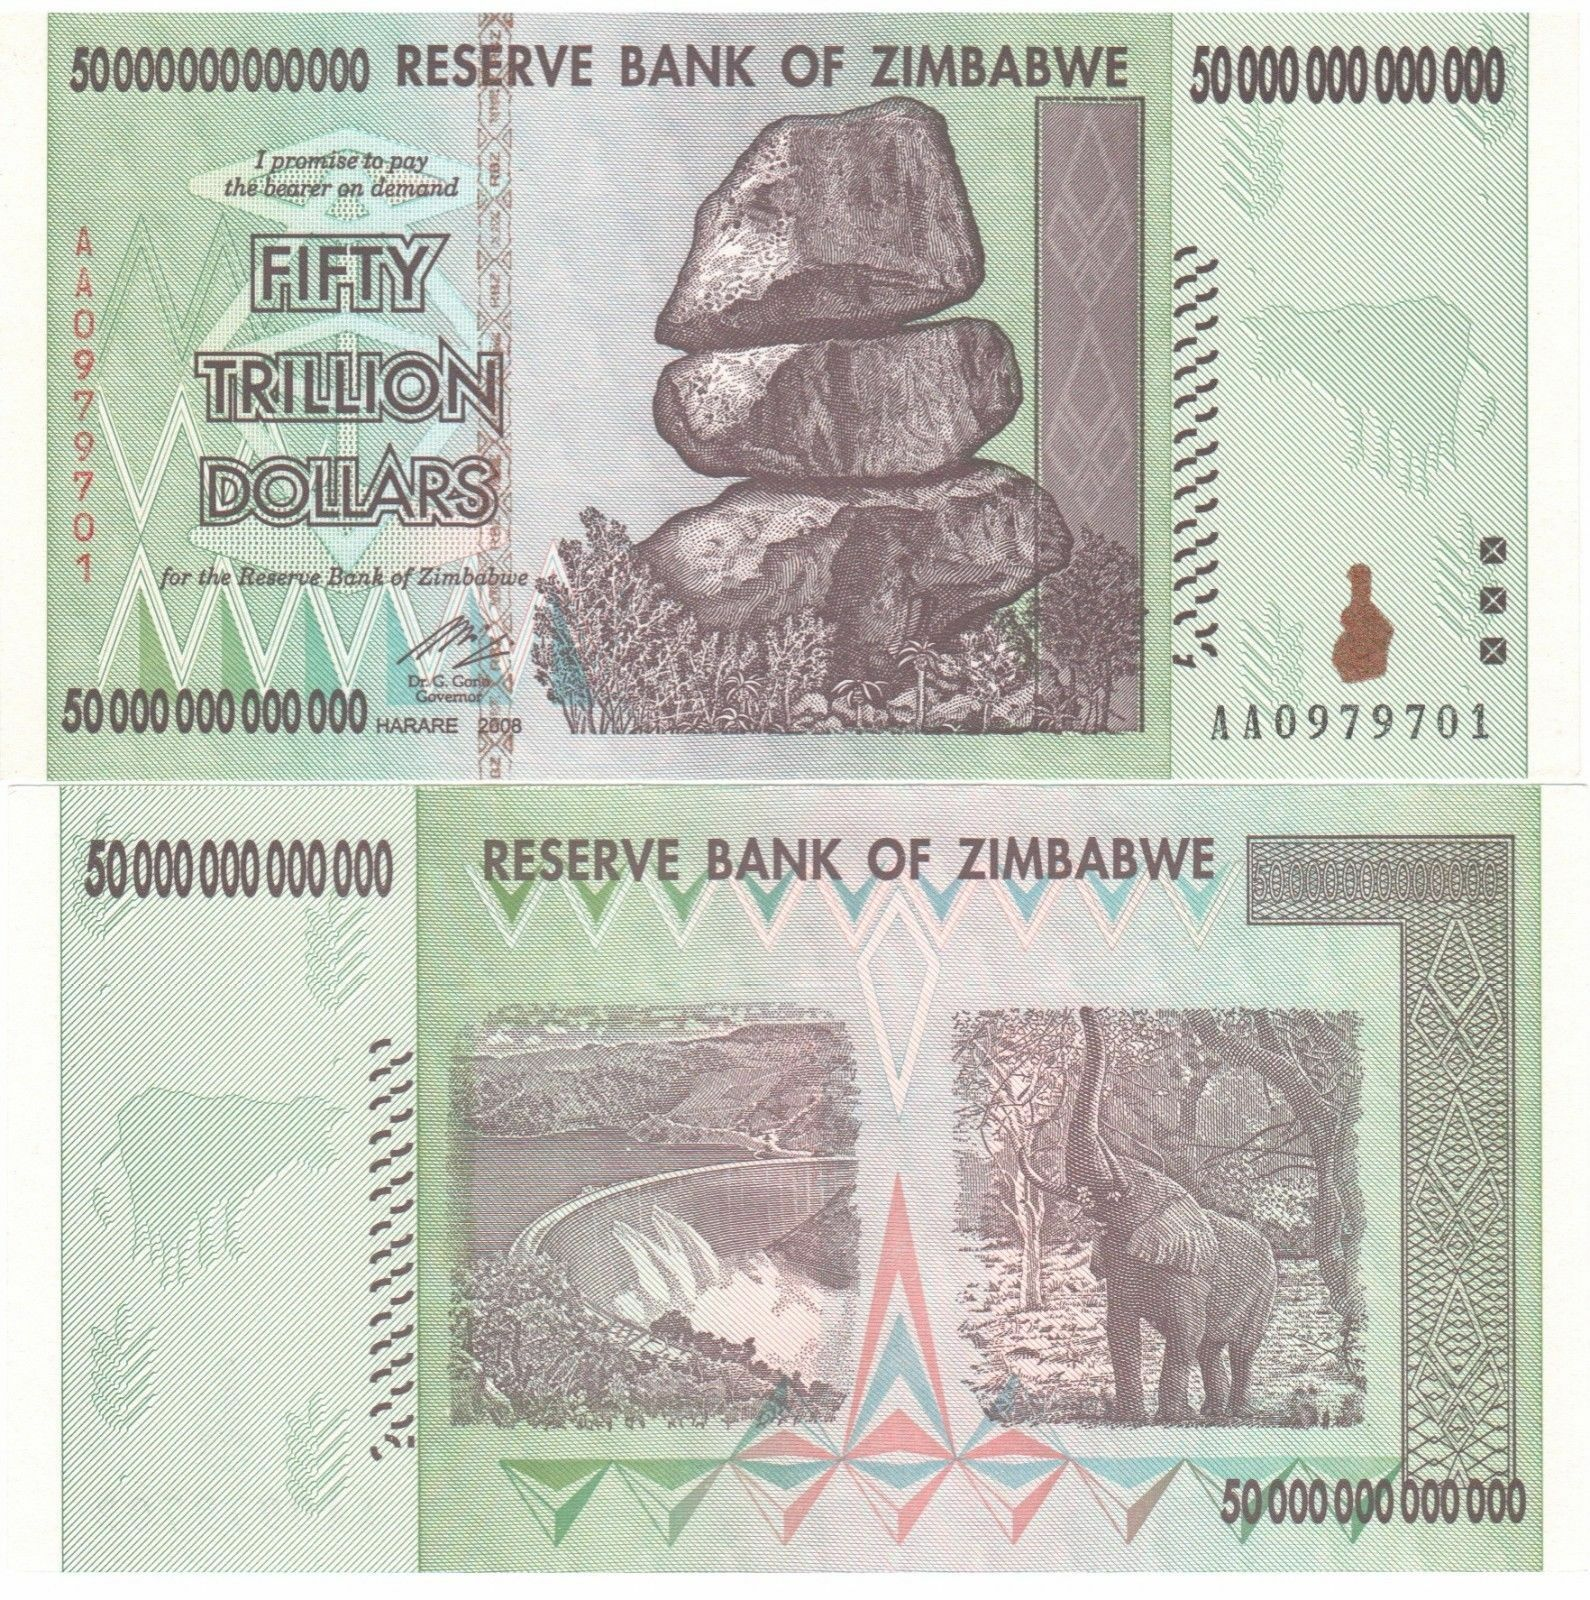 50 TRILLION ZIMBABWE DOLLARS CIRC NOTE 2008 AA SERIES 50 TRILLION ZIM